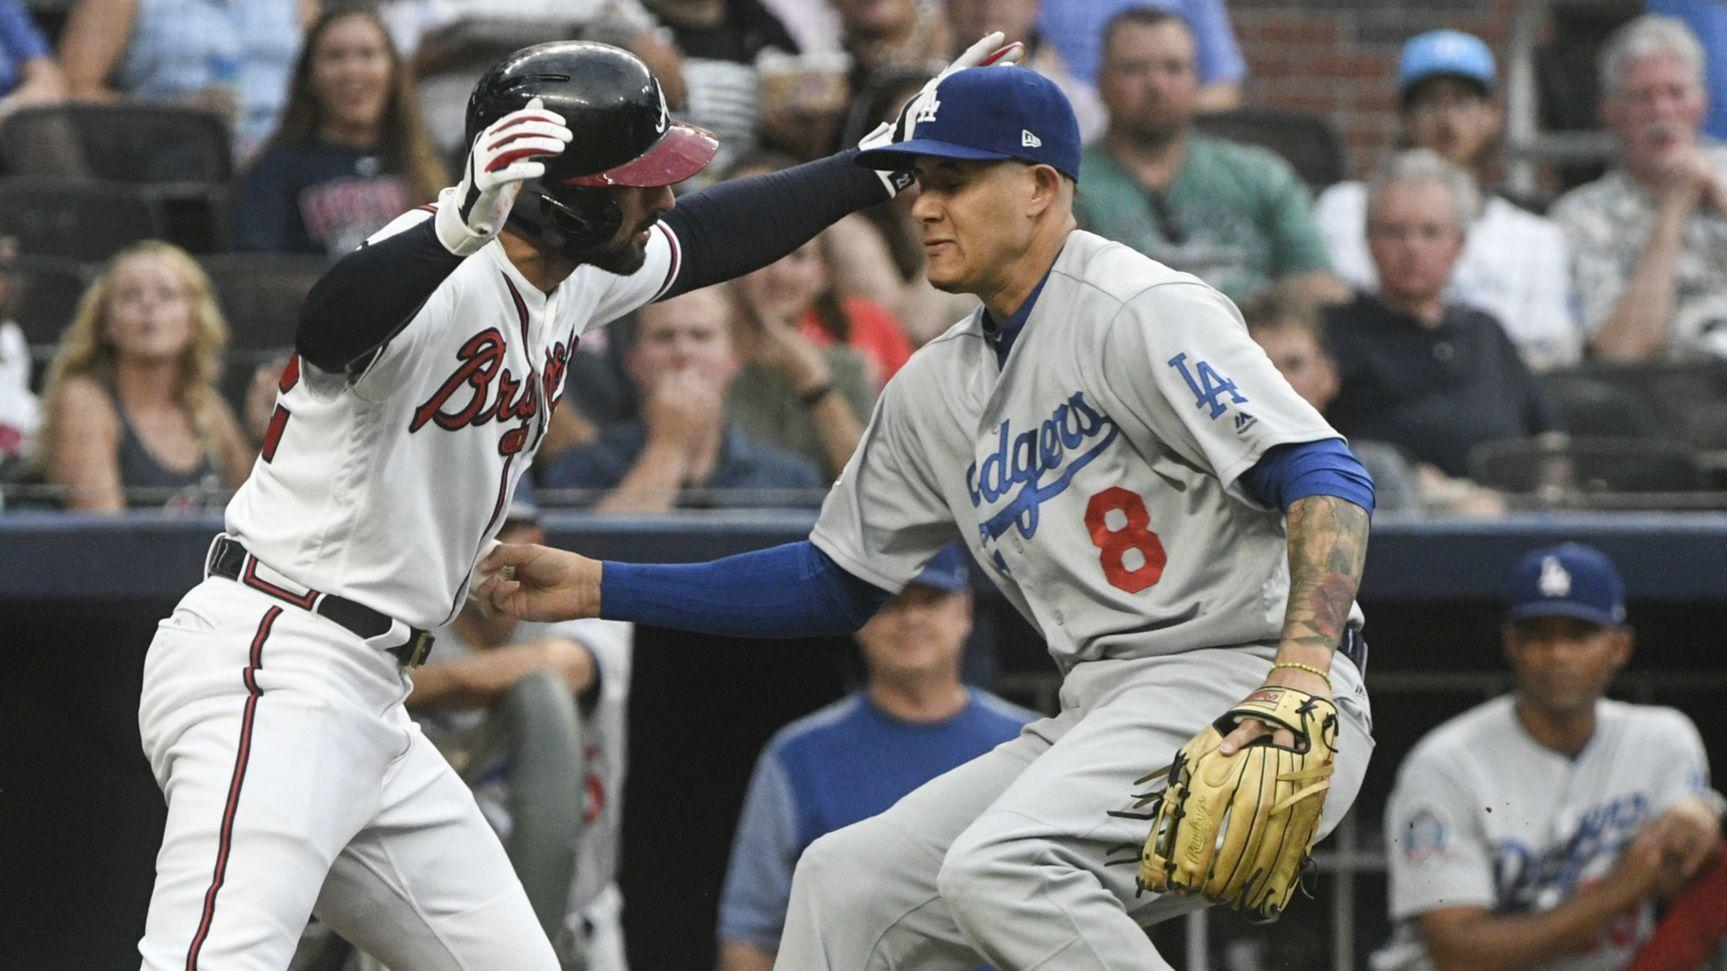 Sd-sp-nlds-glance-braves-dodgers-20181003